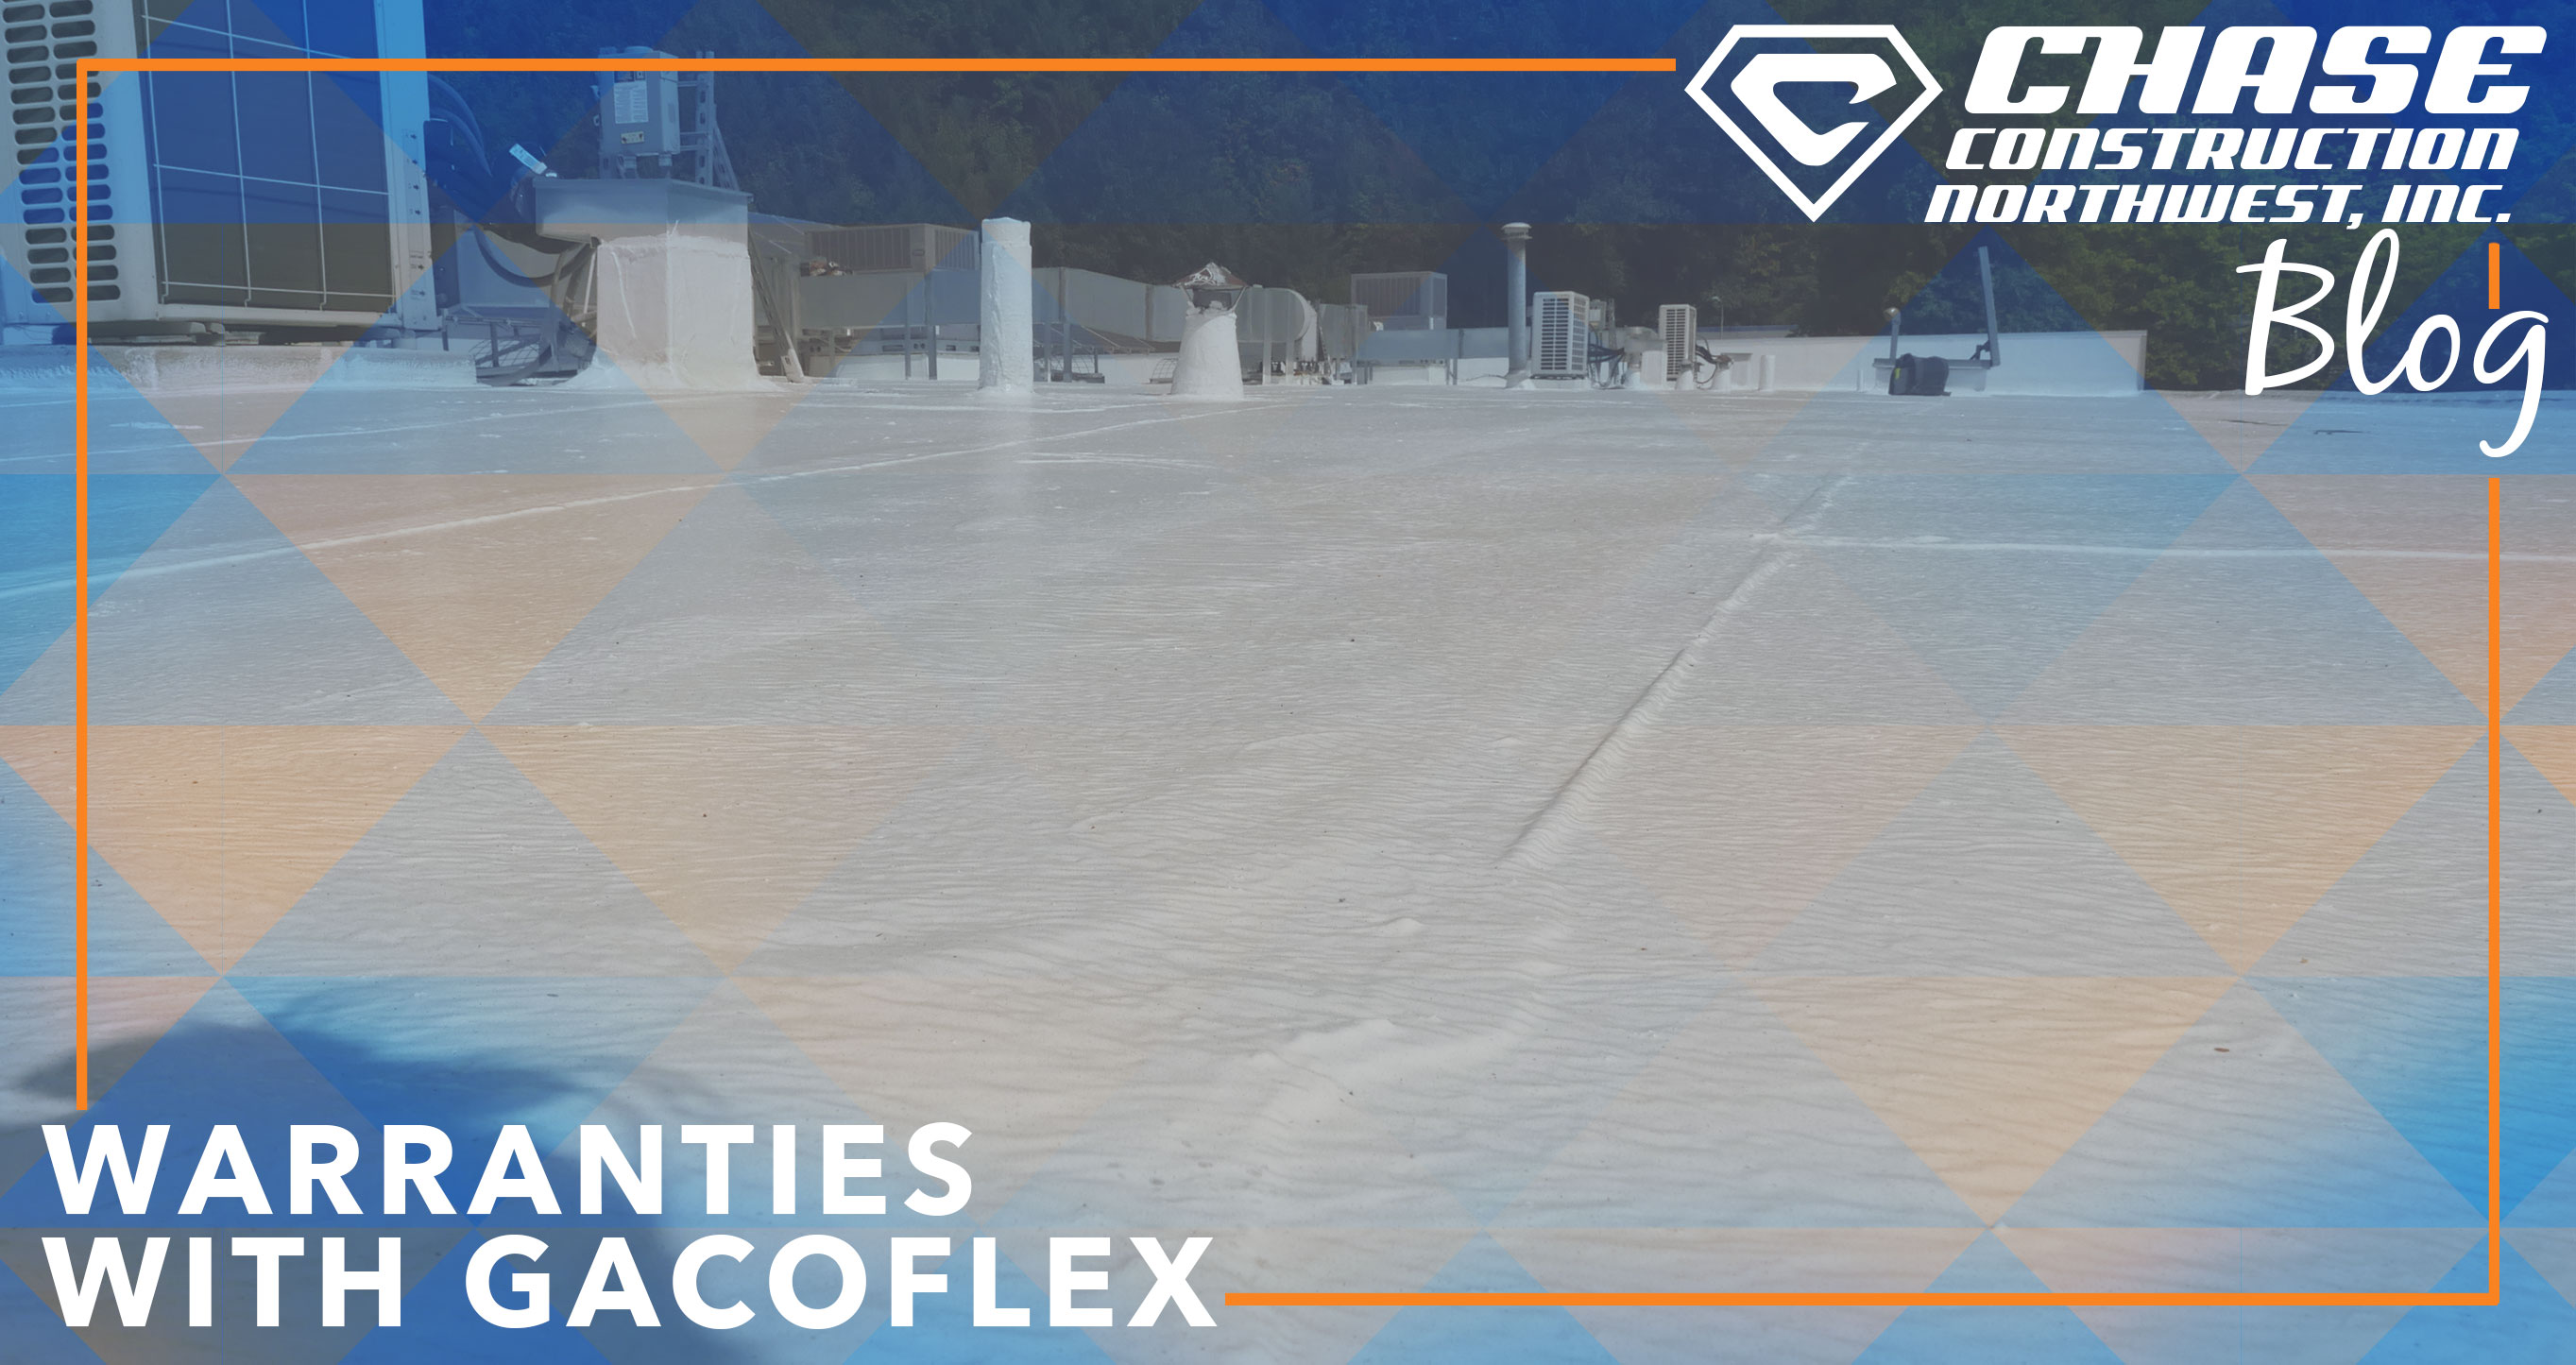 Warranties with GacoFlex